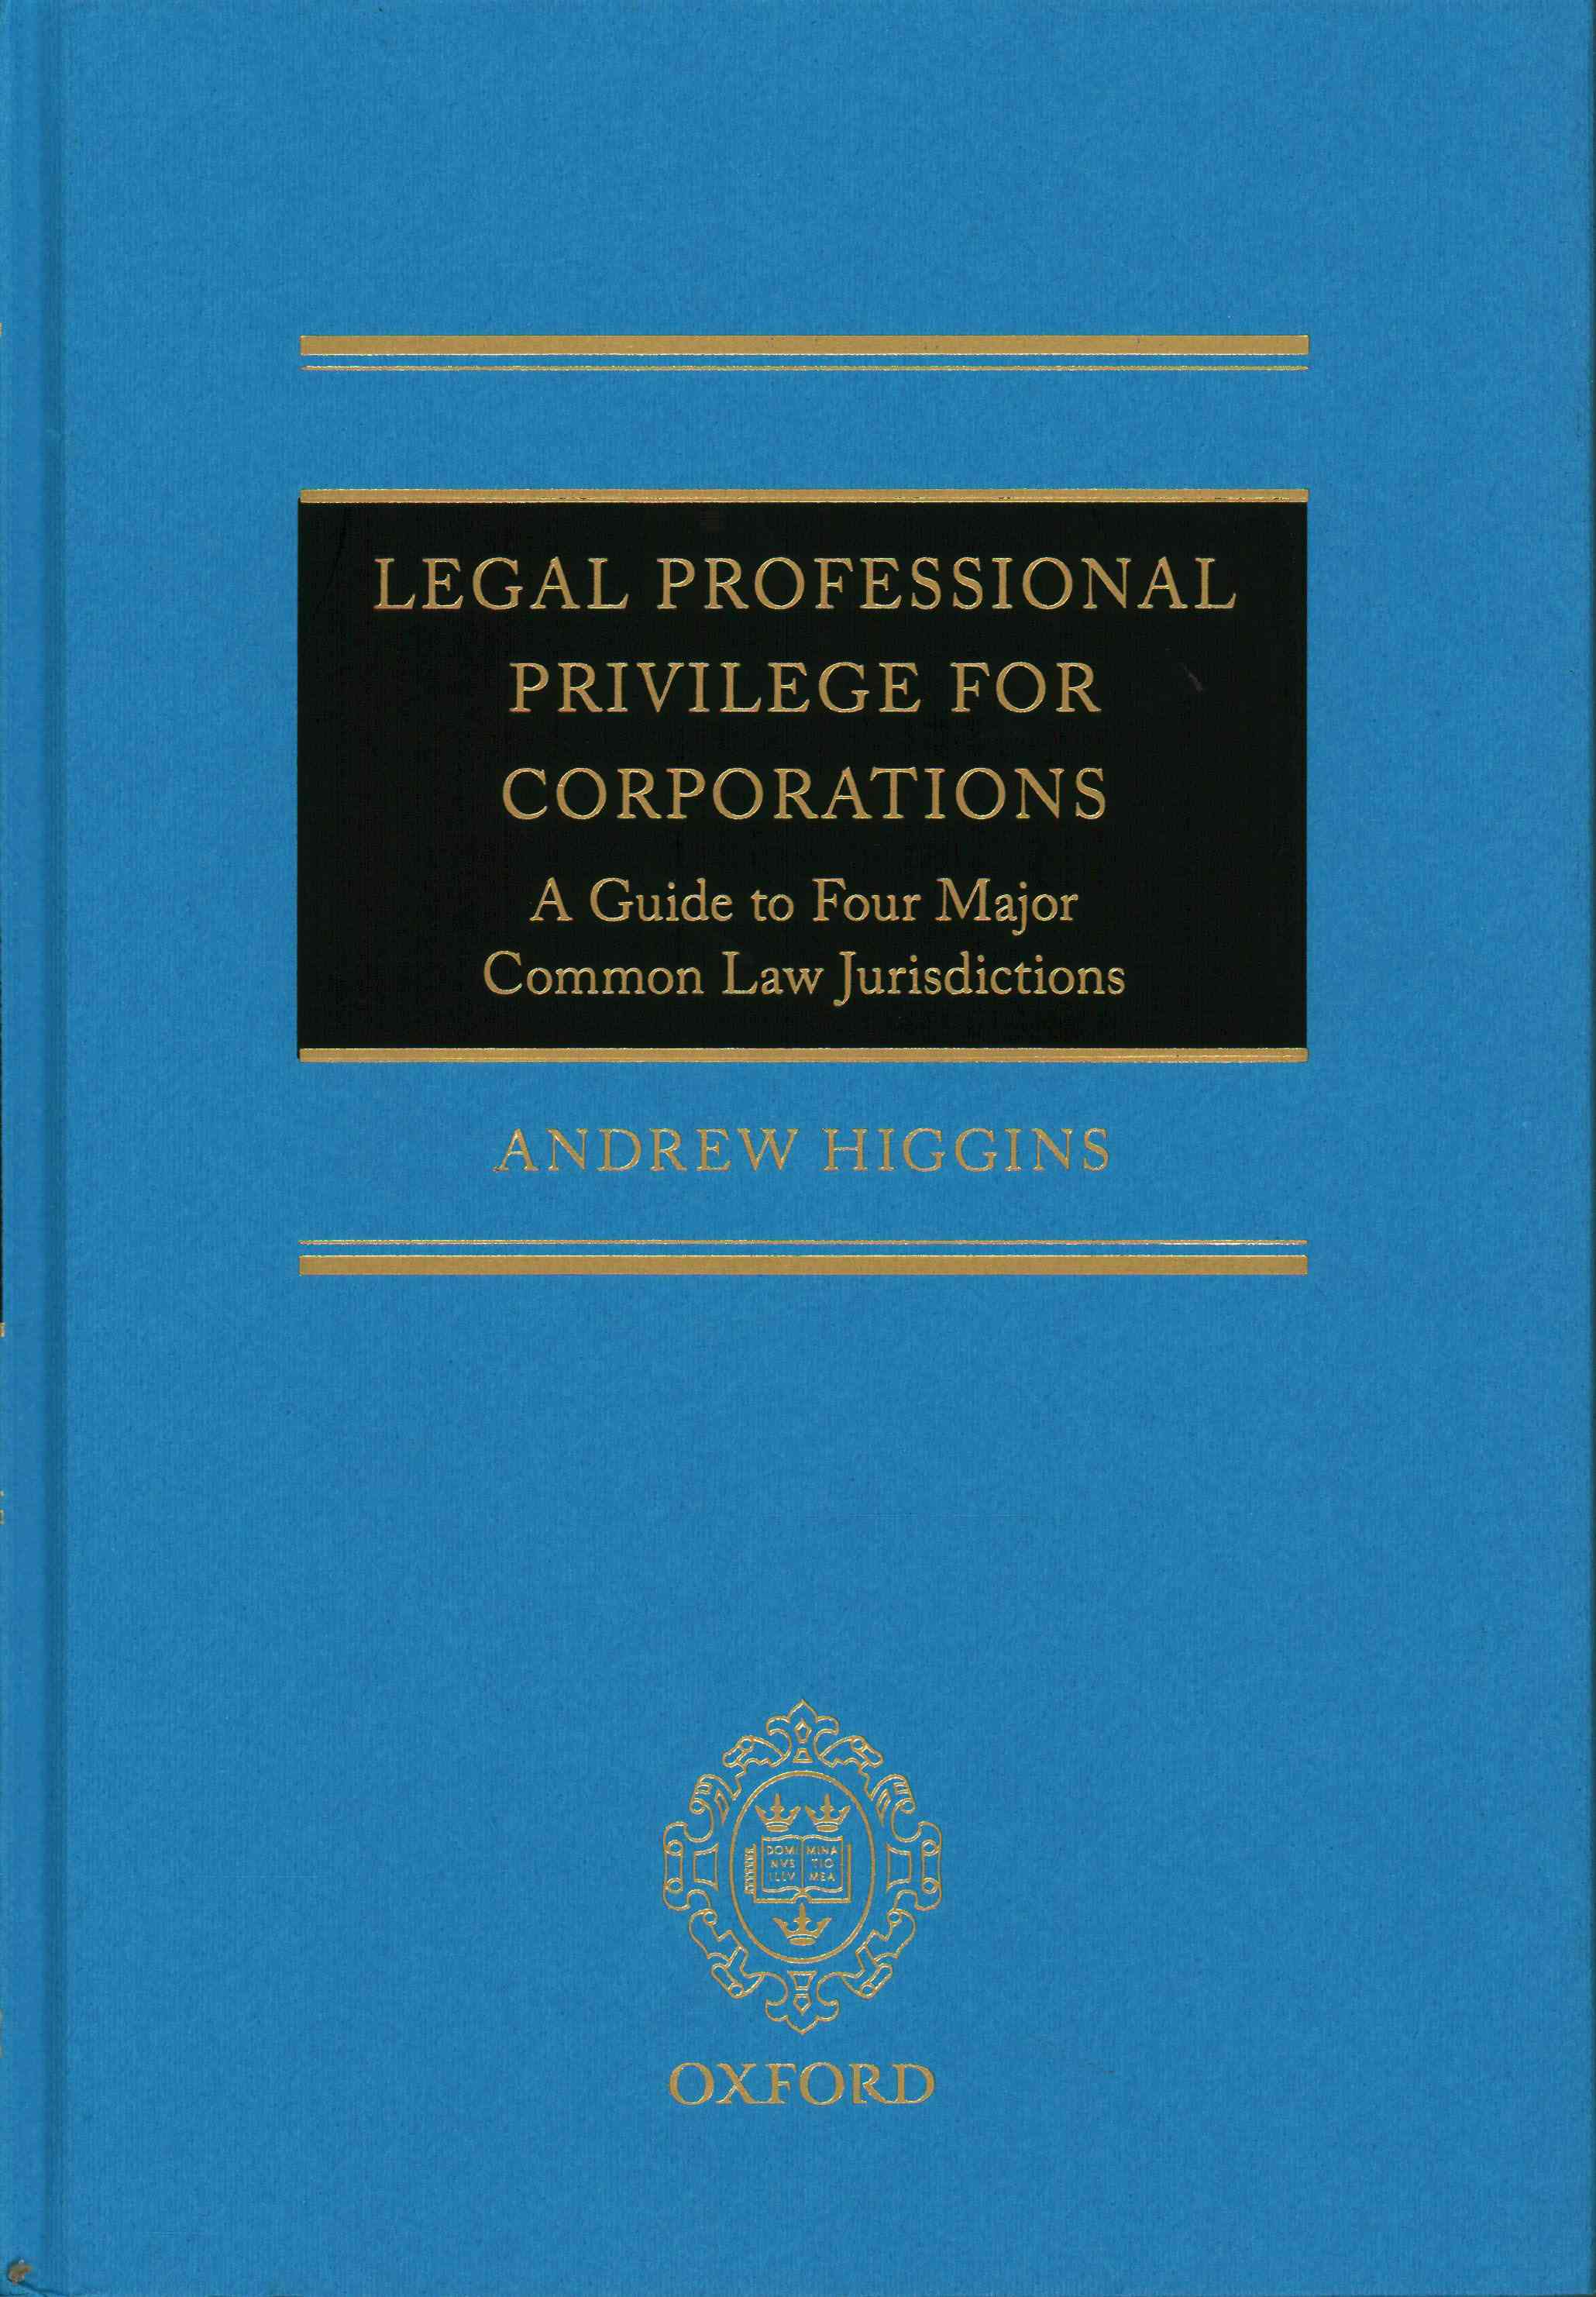 Legal Professional Privilege for Corporations: A Guide to Four Major Common Law Jurisdictions (Hardcover)